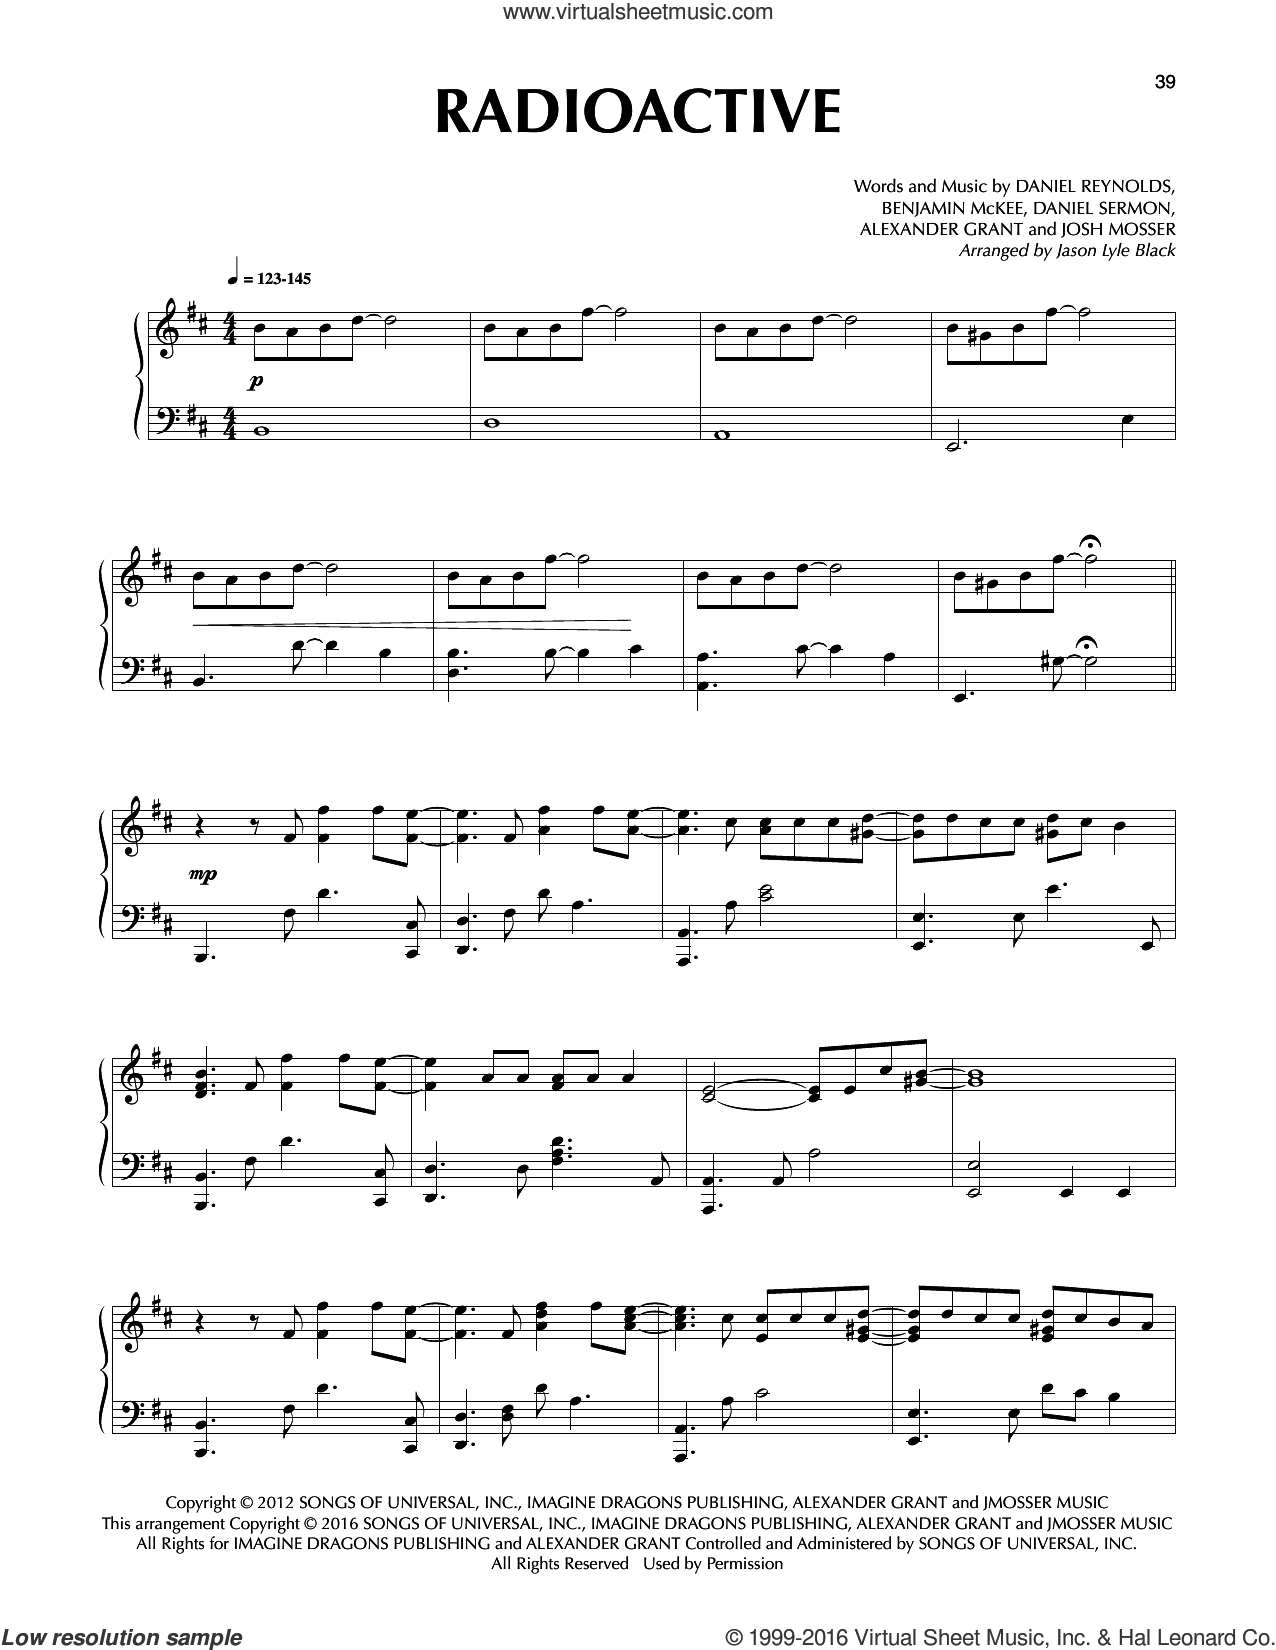 Radioactive sheet music for piano solo by Jason Lyle Black, Imagine Dragons, Alexander Grant, Benjamin McKee, Daniel Reynolds, Daniel Sermon and Josh Mosser, intermediate. Score Image Preview.